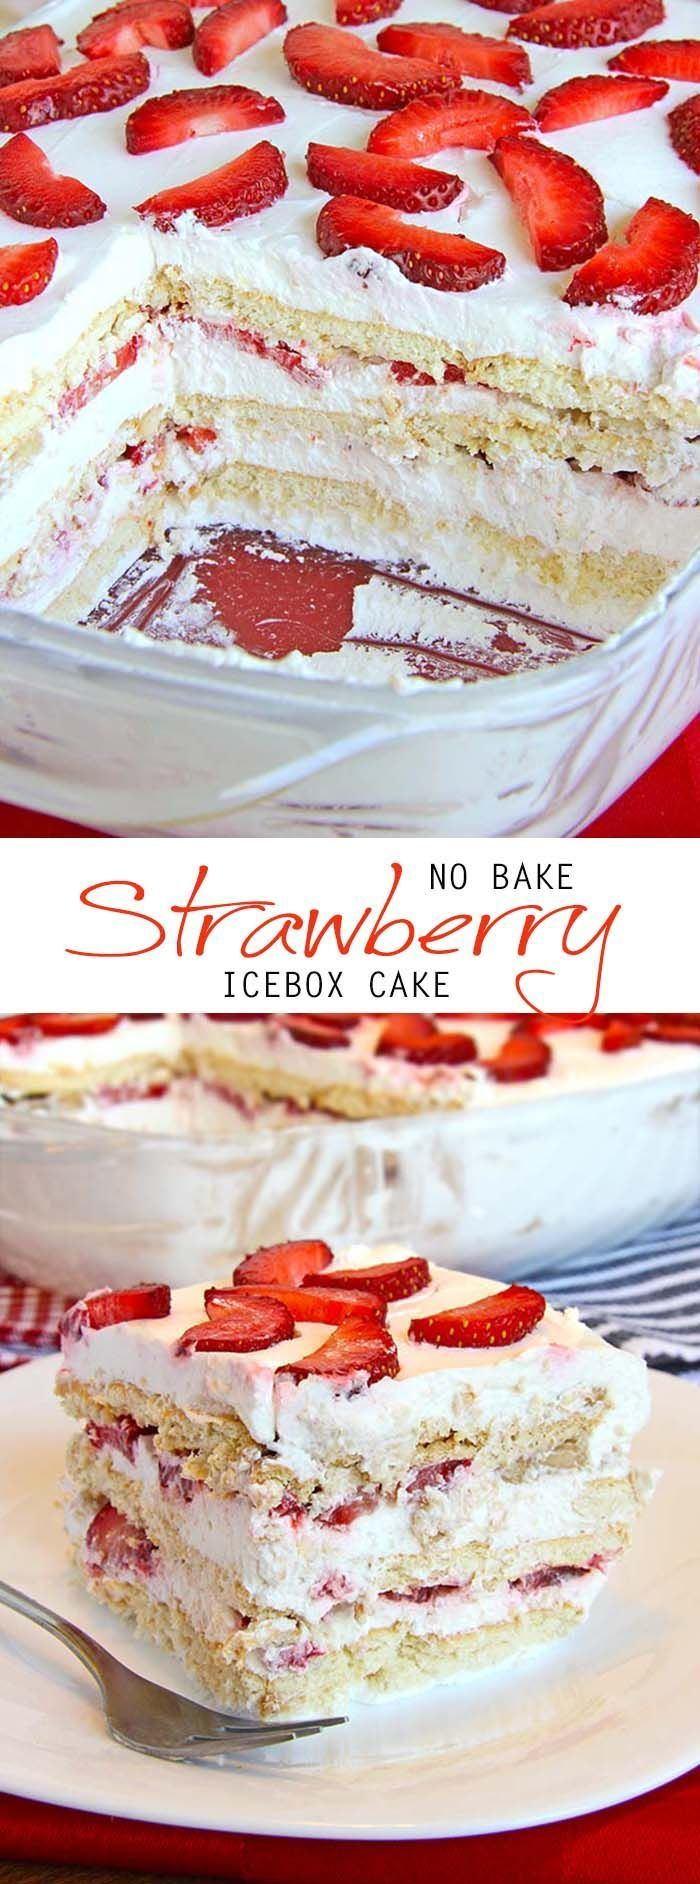 No bake strawberry icebox cake recipe strawberry for Quick dessert recipes with pictures